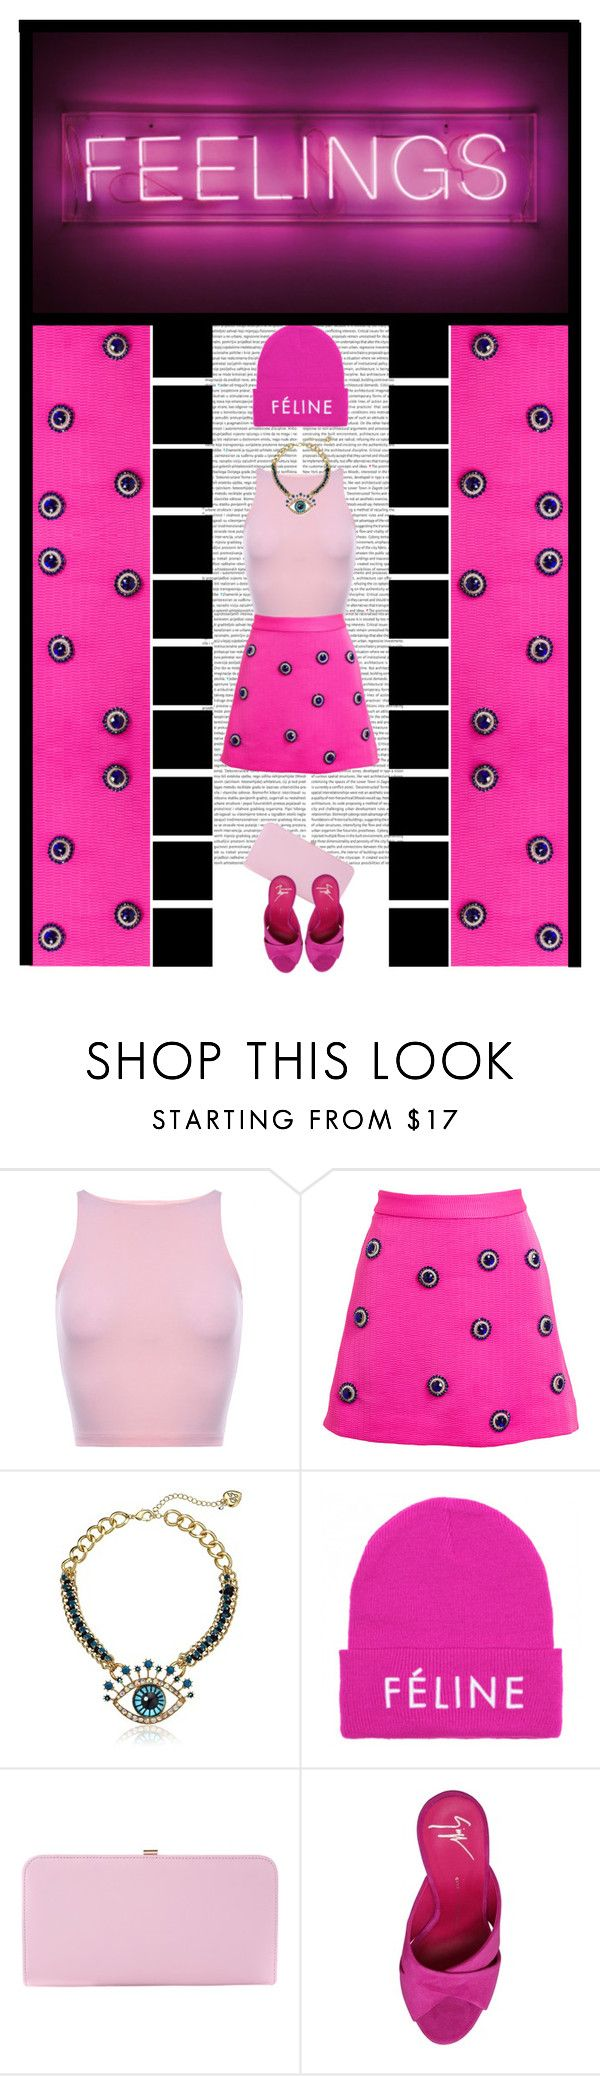 """FEELINGS -"" by irresistible-livingdeadgirl ❤ liked on Polyvore featuring House of Holland, Betsey Johnson, Brian Lichtenberg, Dune, Giuseppe Zanotti, sandals, polyvorecommunity, BetseyJohnson, statementnecklace and houseofholland"